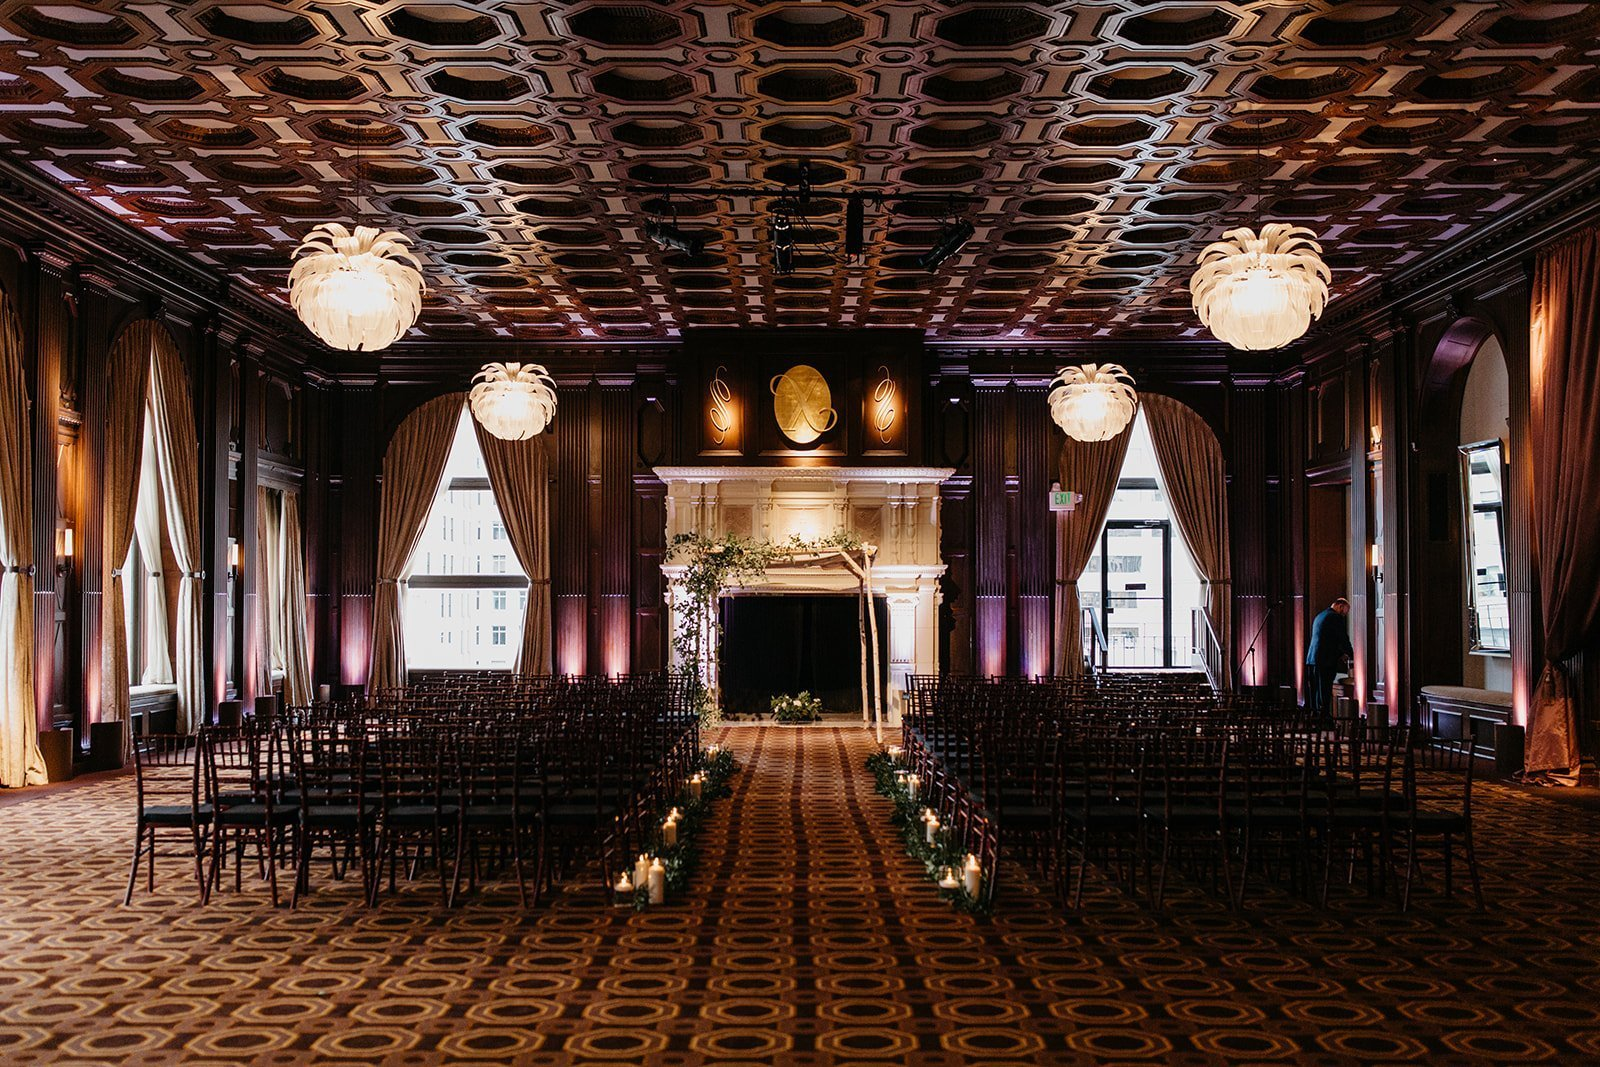 A black and white wedding inspiration. This Russian wedding was held at the Julia Morgan Ballroom in San Francisco. Ballroom wedding inspiration, black and white wedding theme, black wedding decorations.